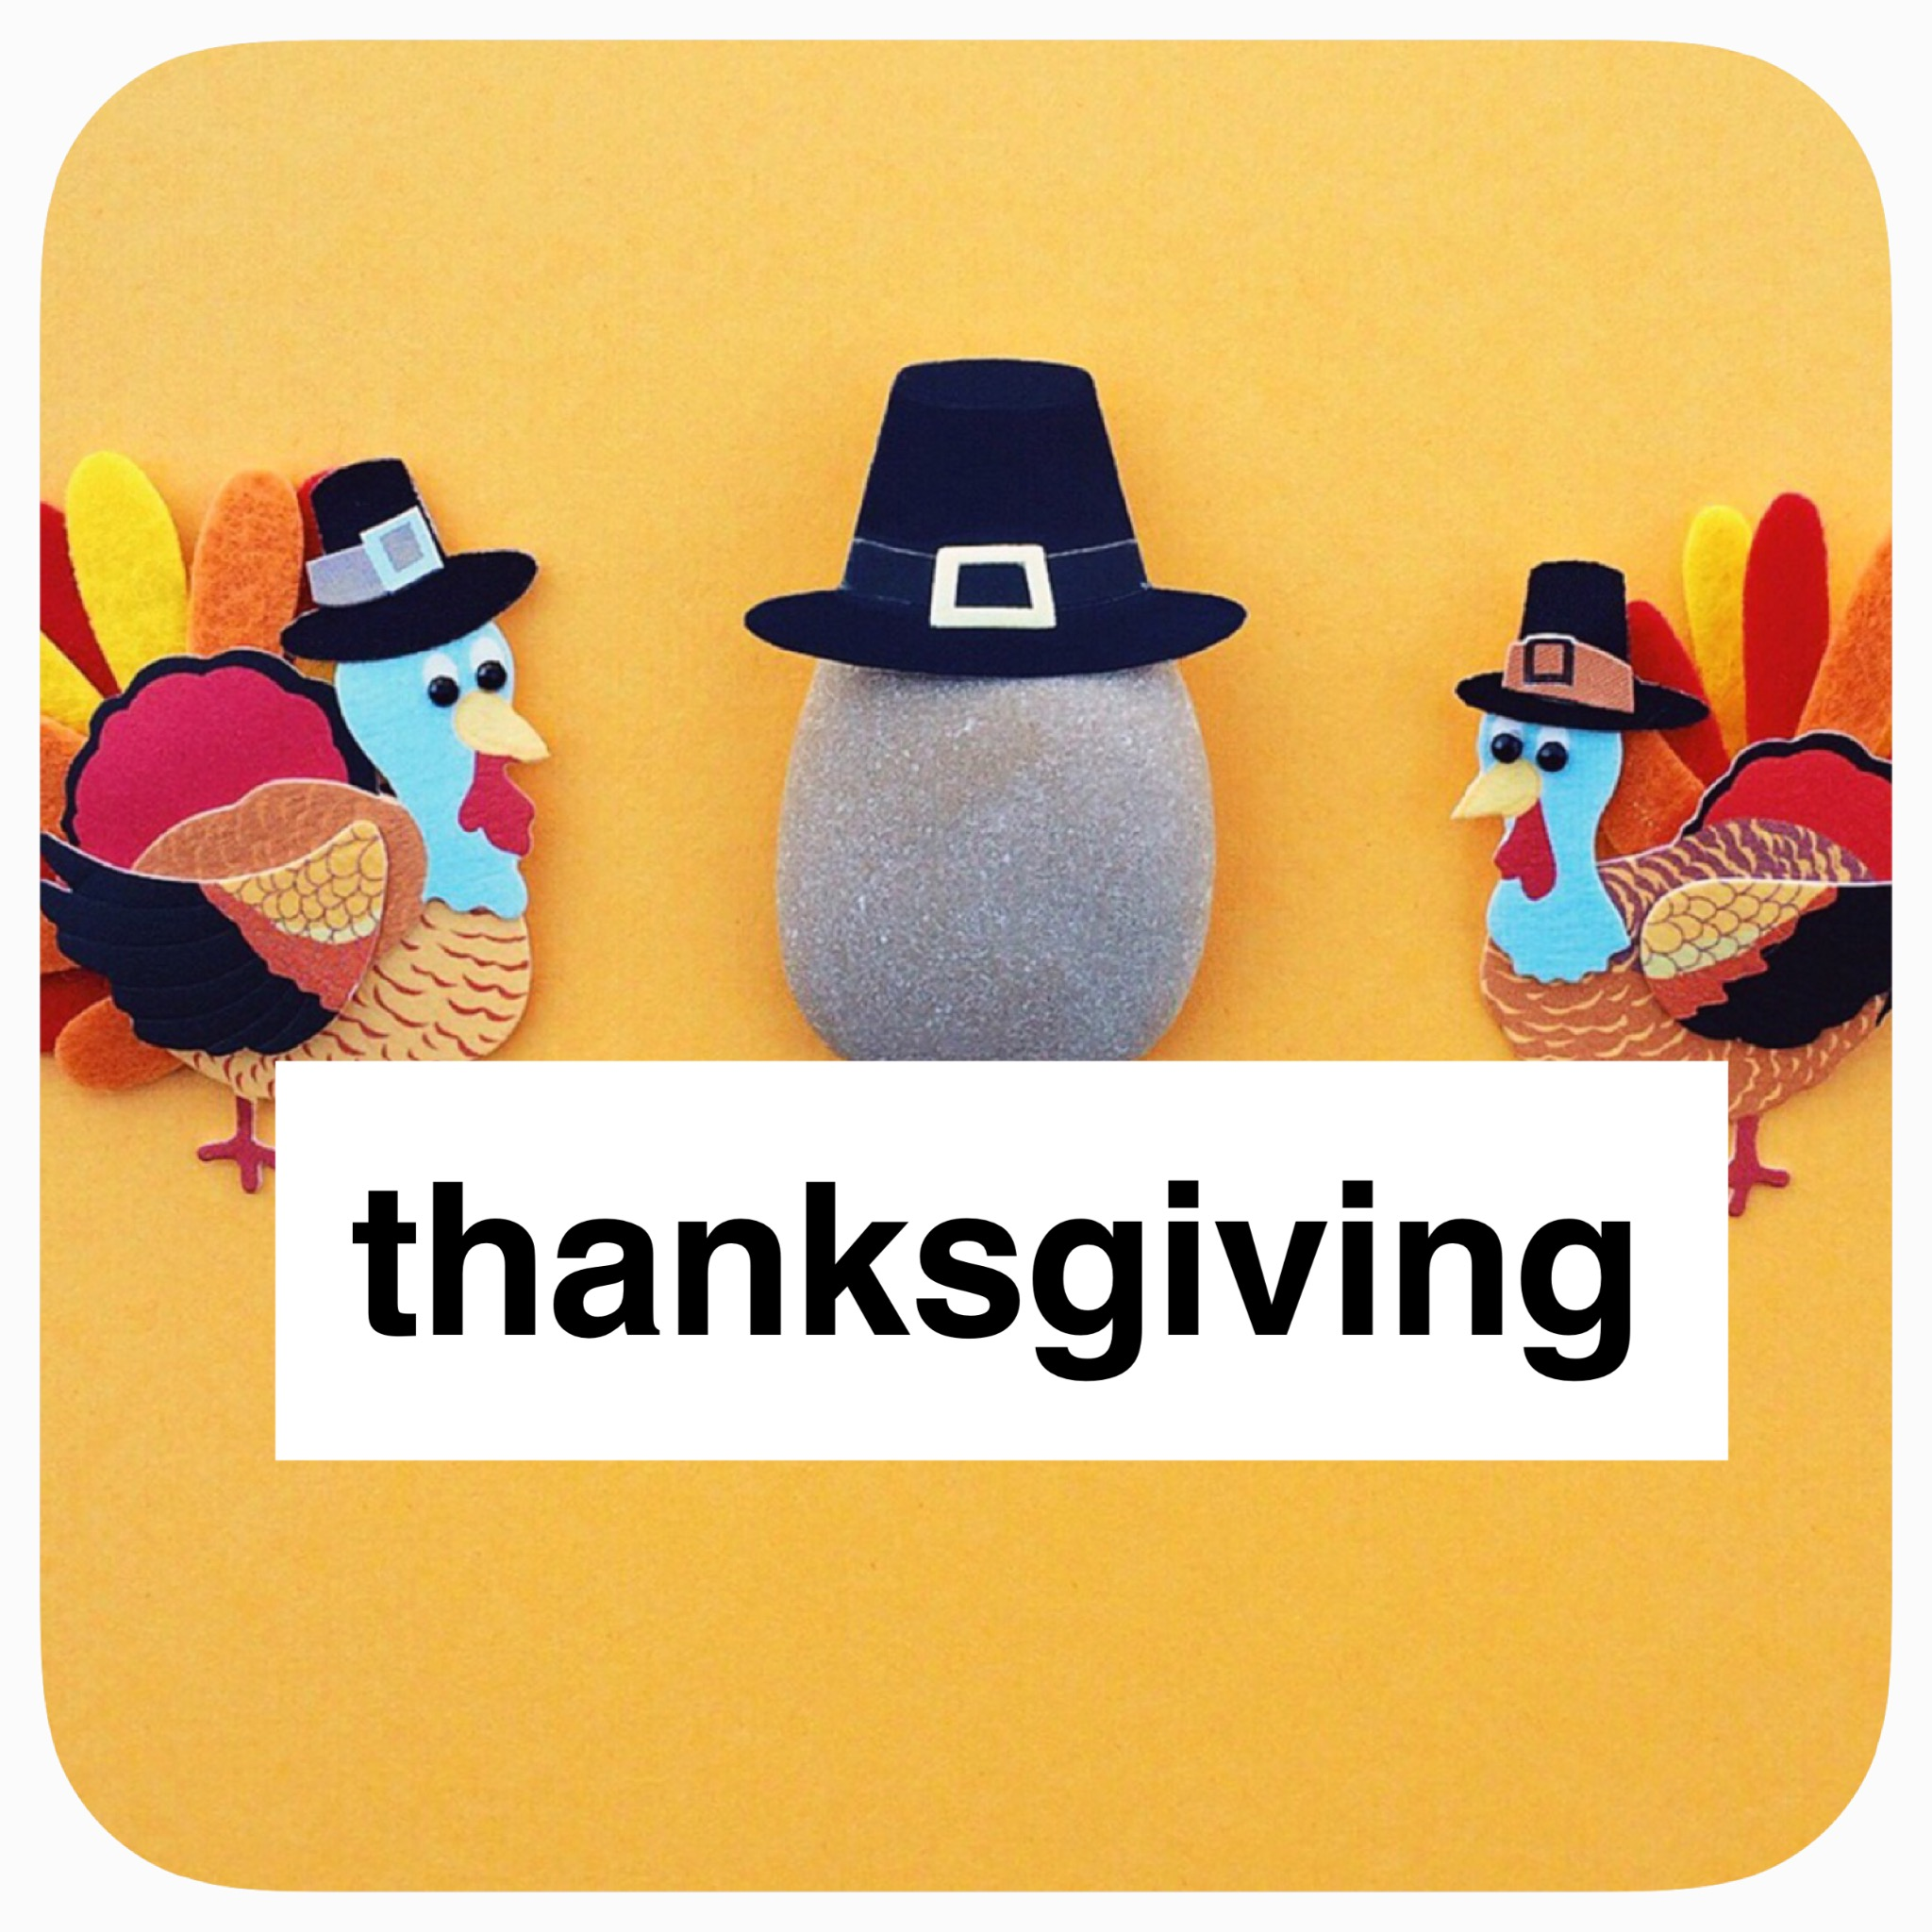 Thanksgiving related activity and projects for you and your little one.